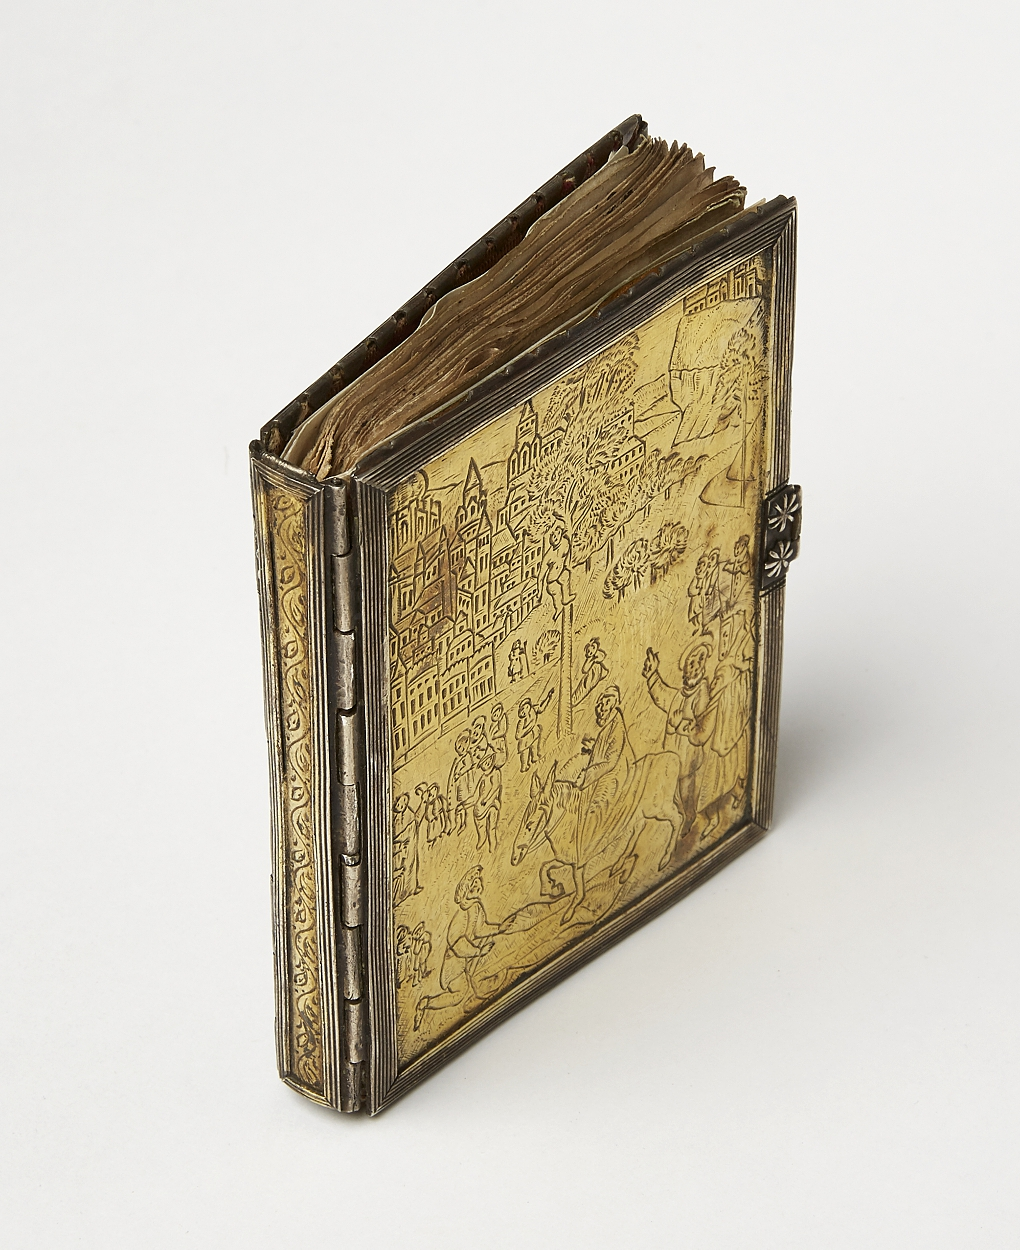 Medieval manuscript on vellum c. 1450-1500